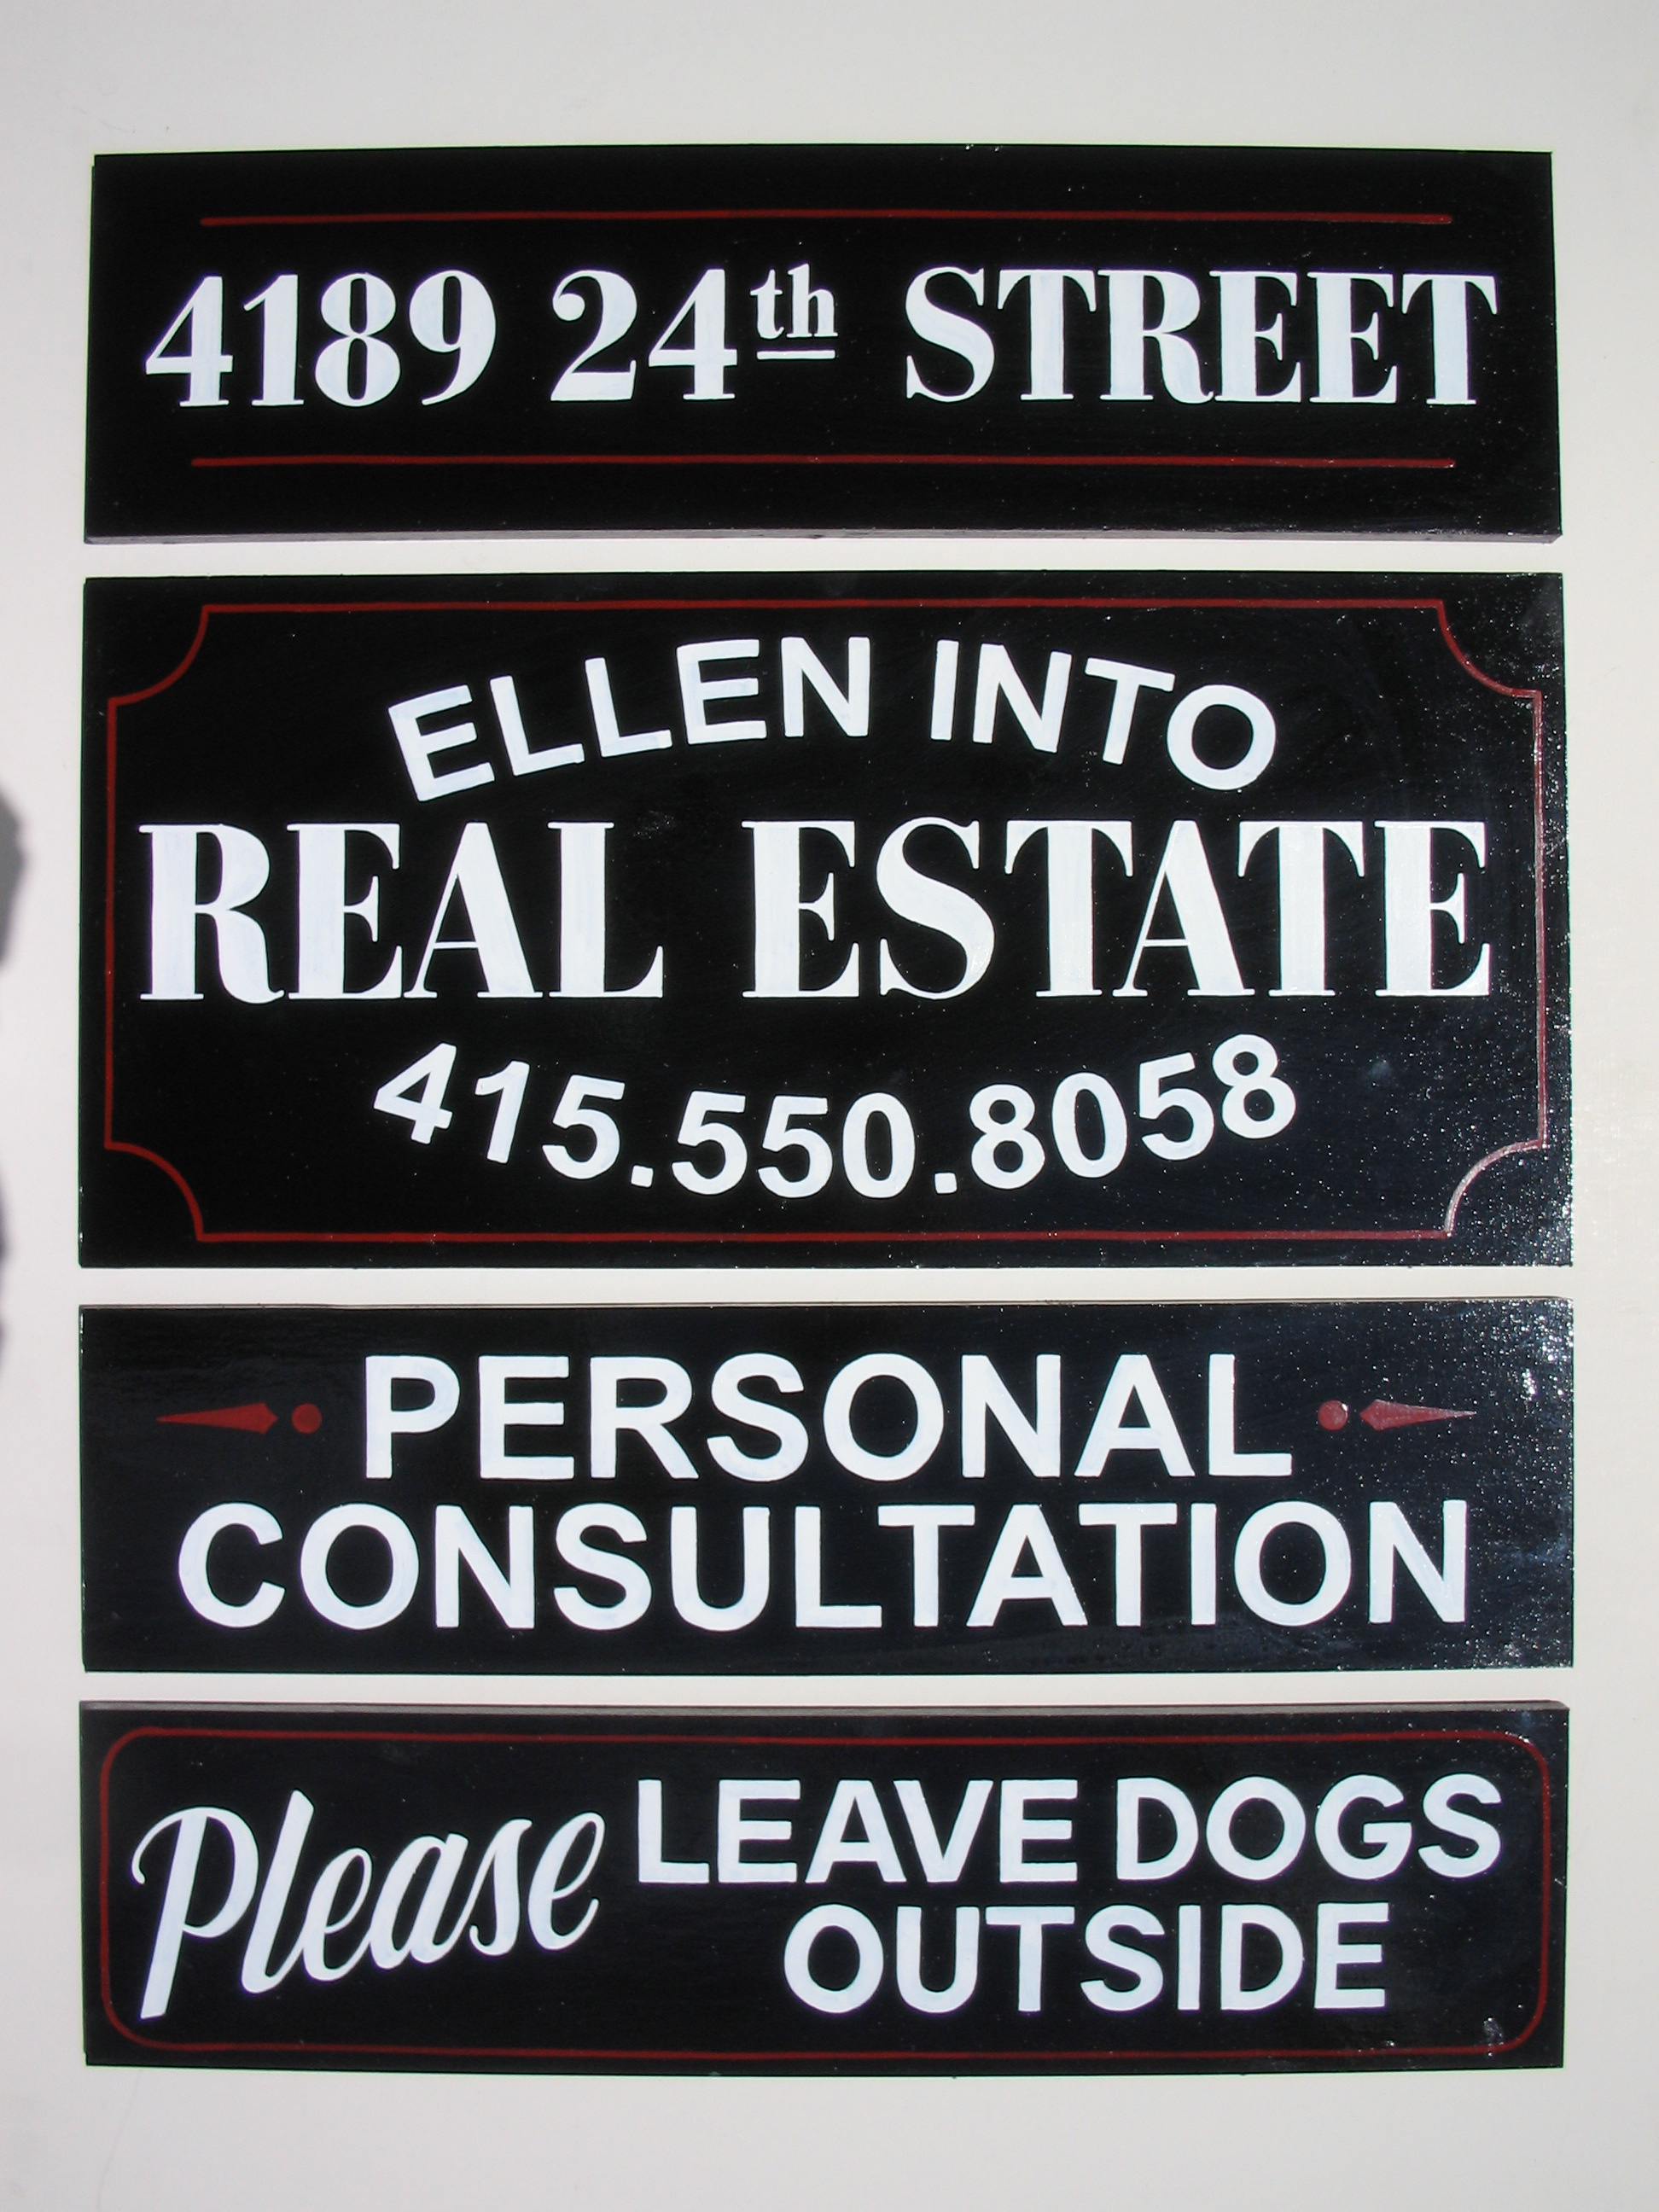 HAND-ellen-into-real-estate_3161107415_o.jpg